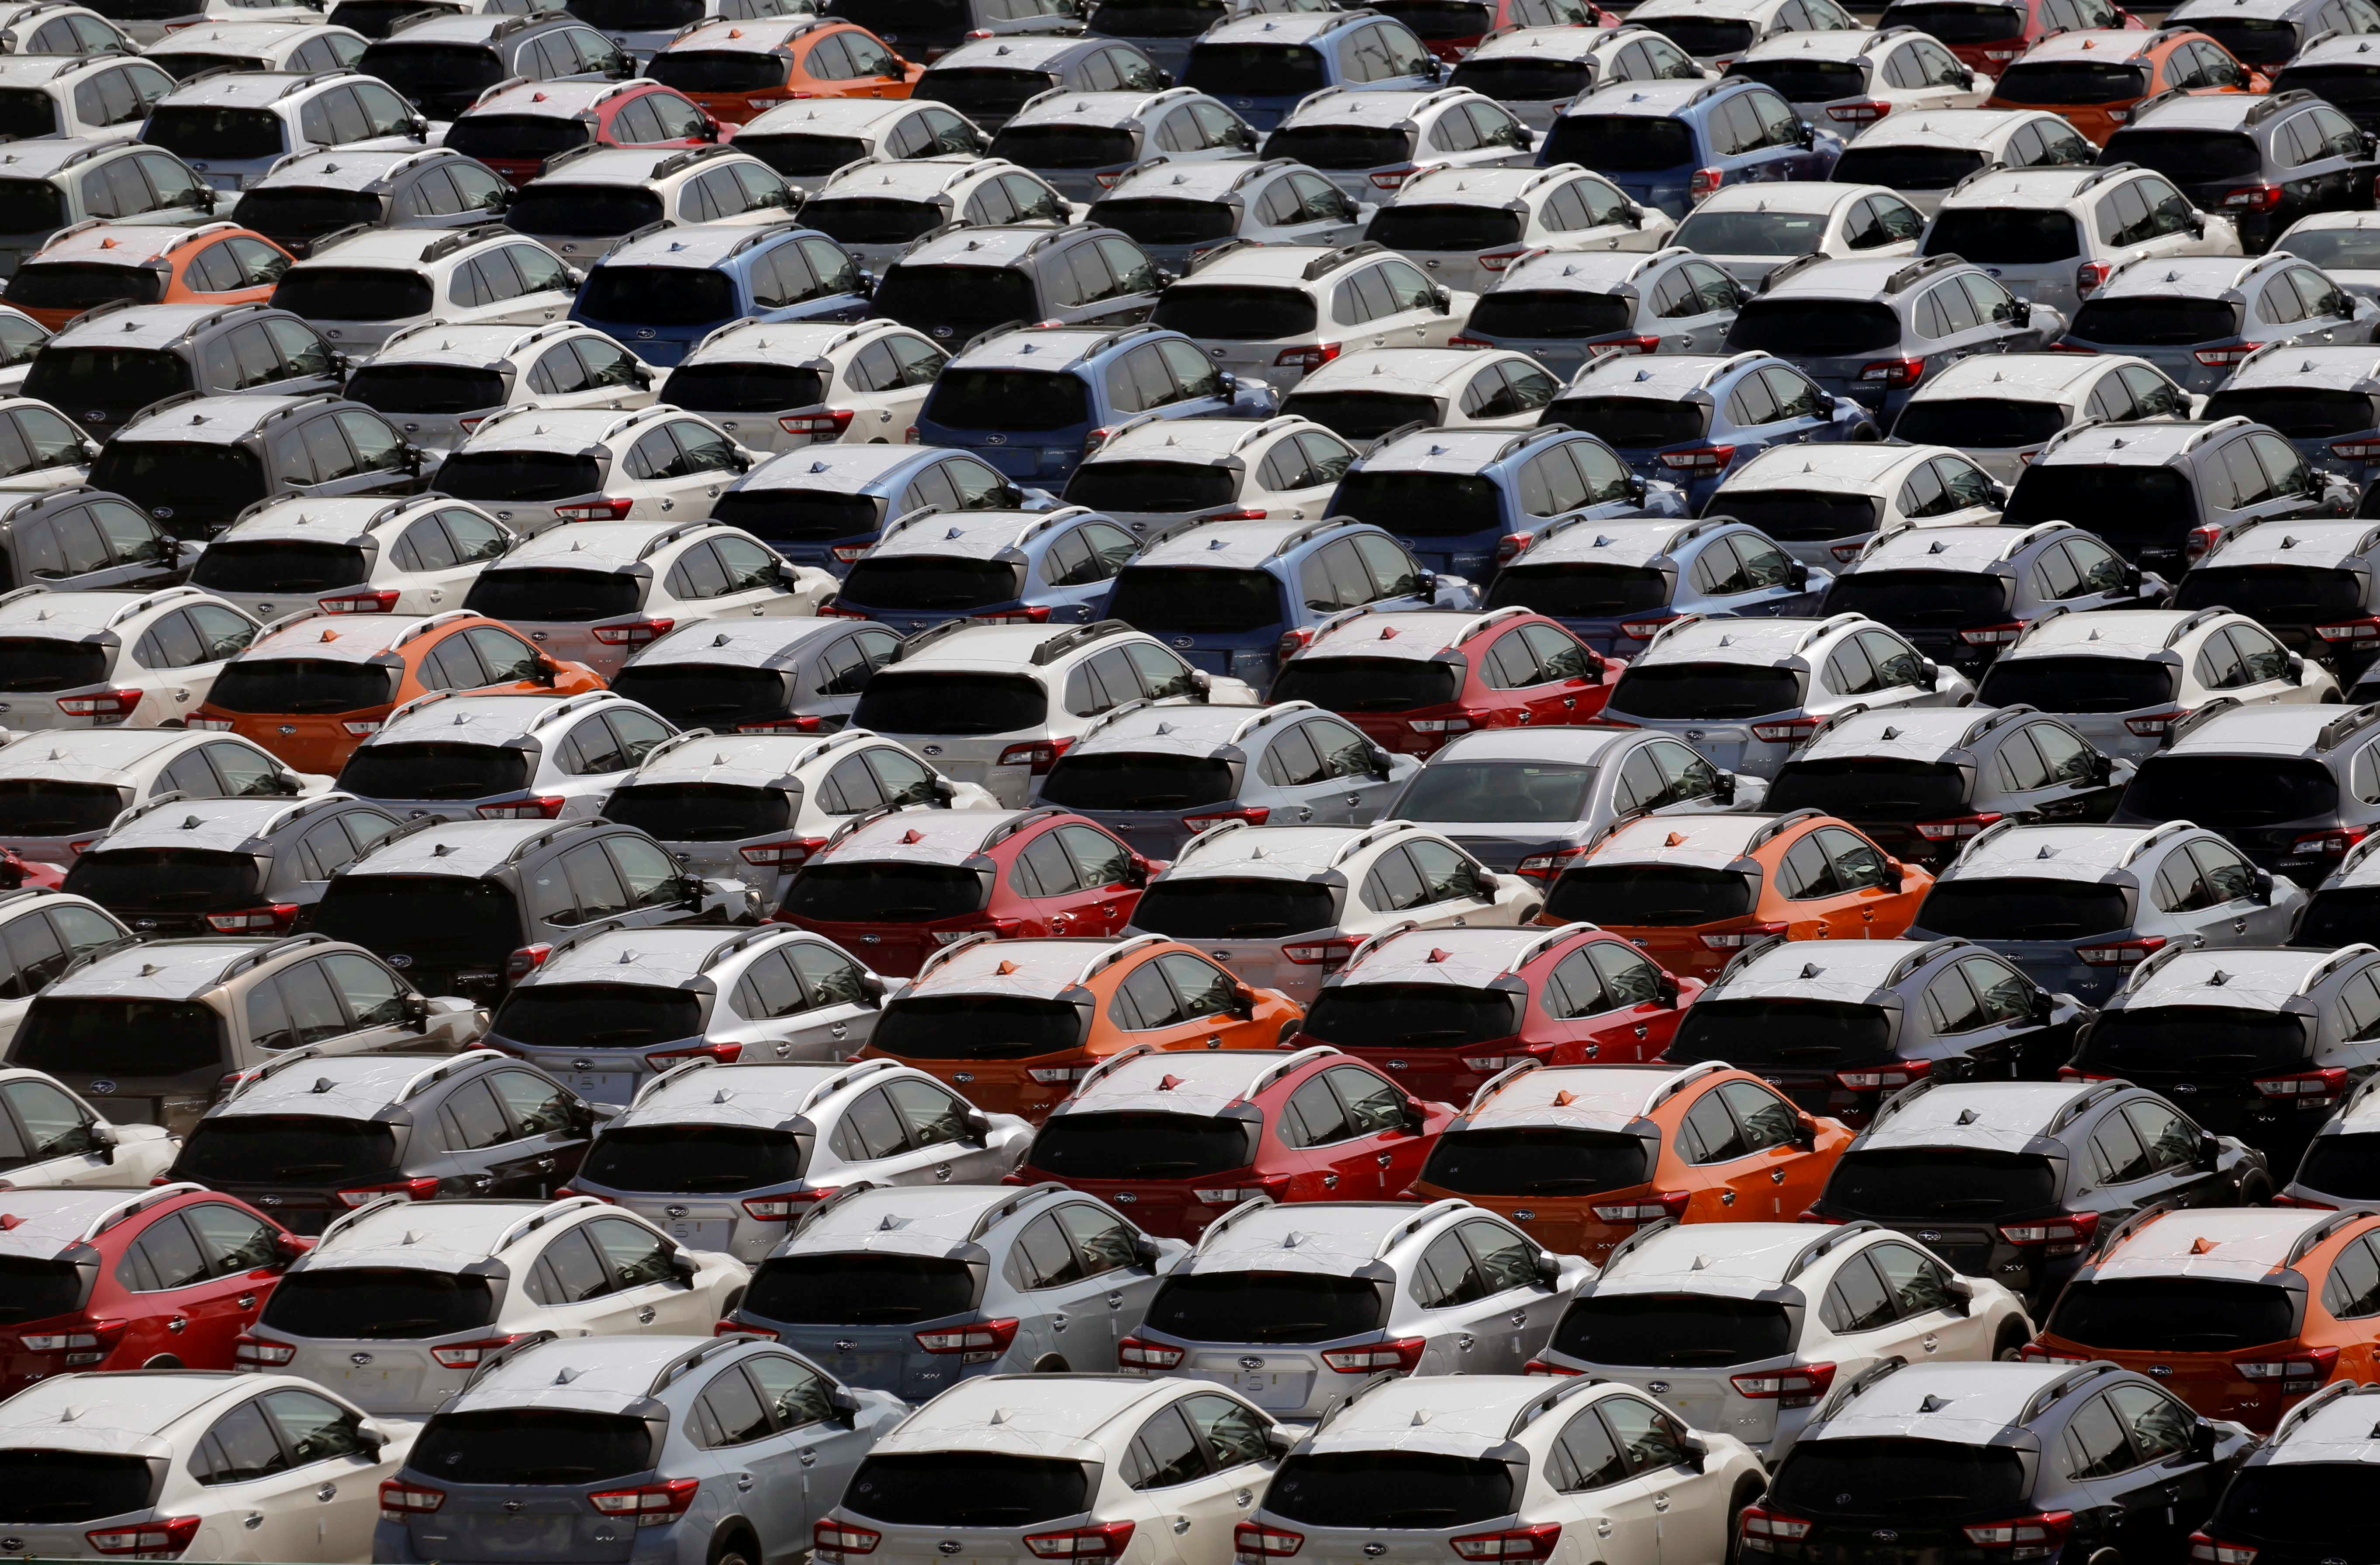 Newly manufactured cars of the automobile maker Subaru await export in a port in Yokohama, Japan May 30, 2017.